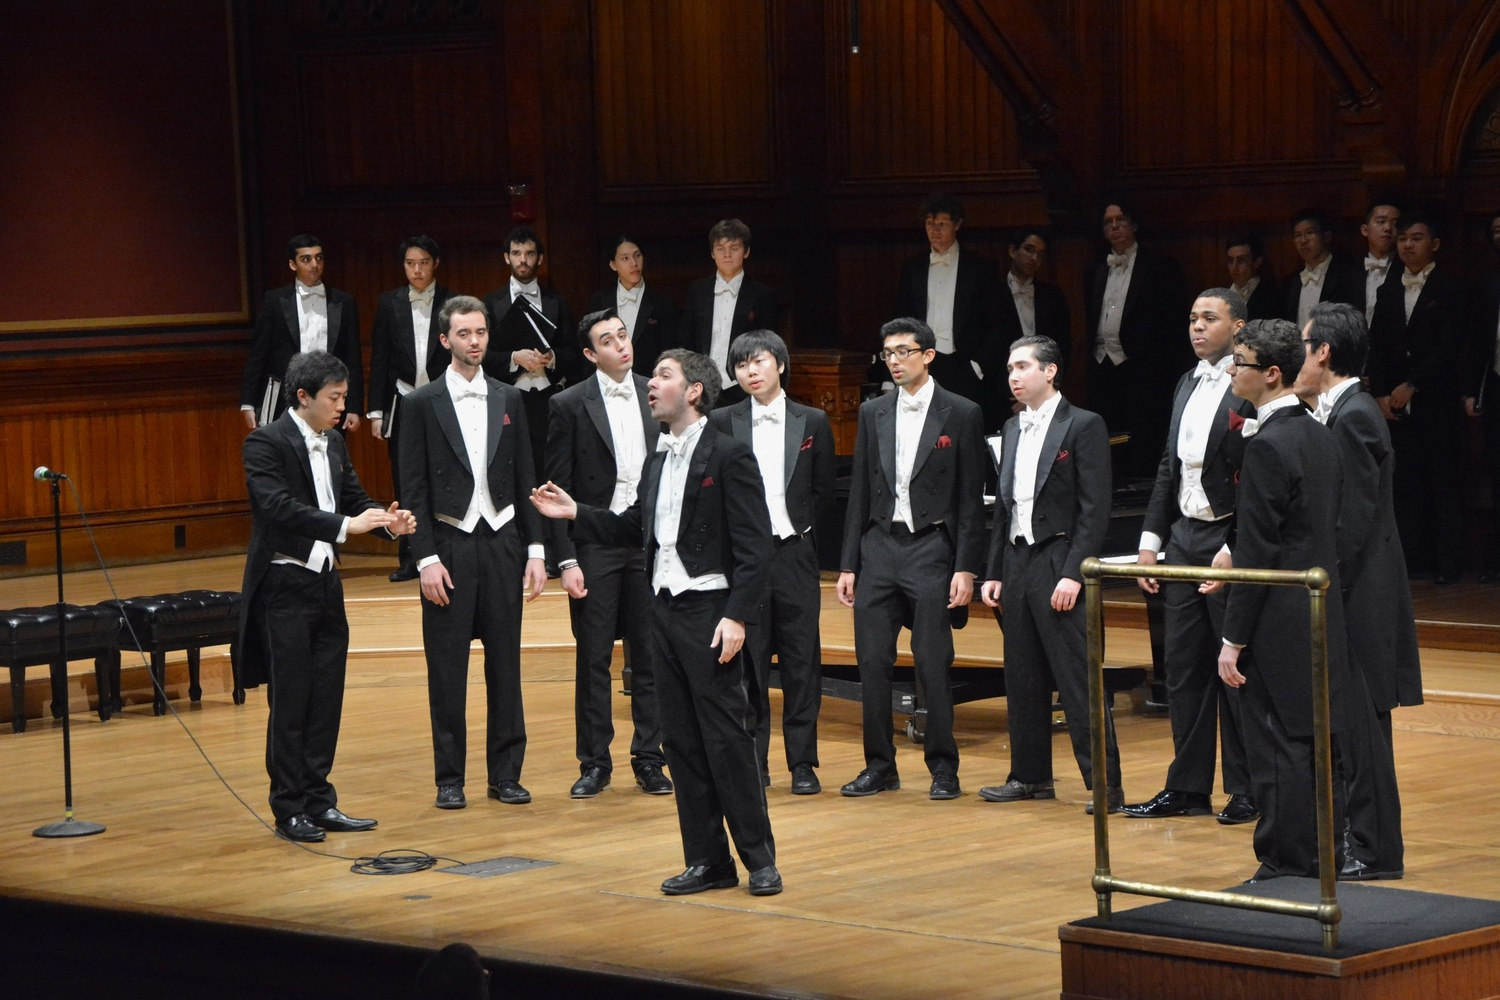 The Harvard Glee Club performs in 2018.